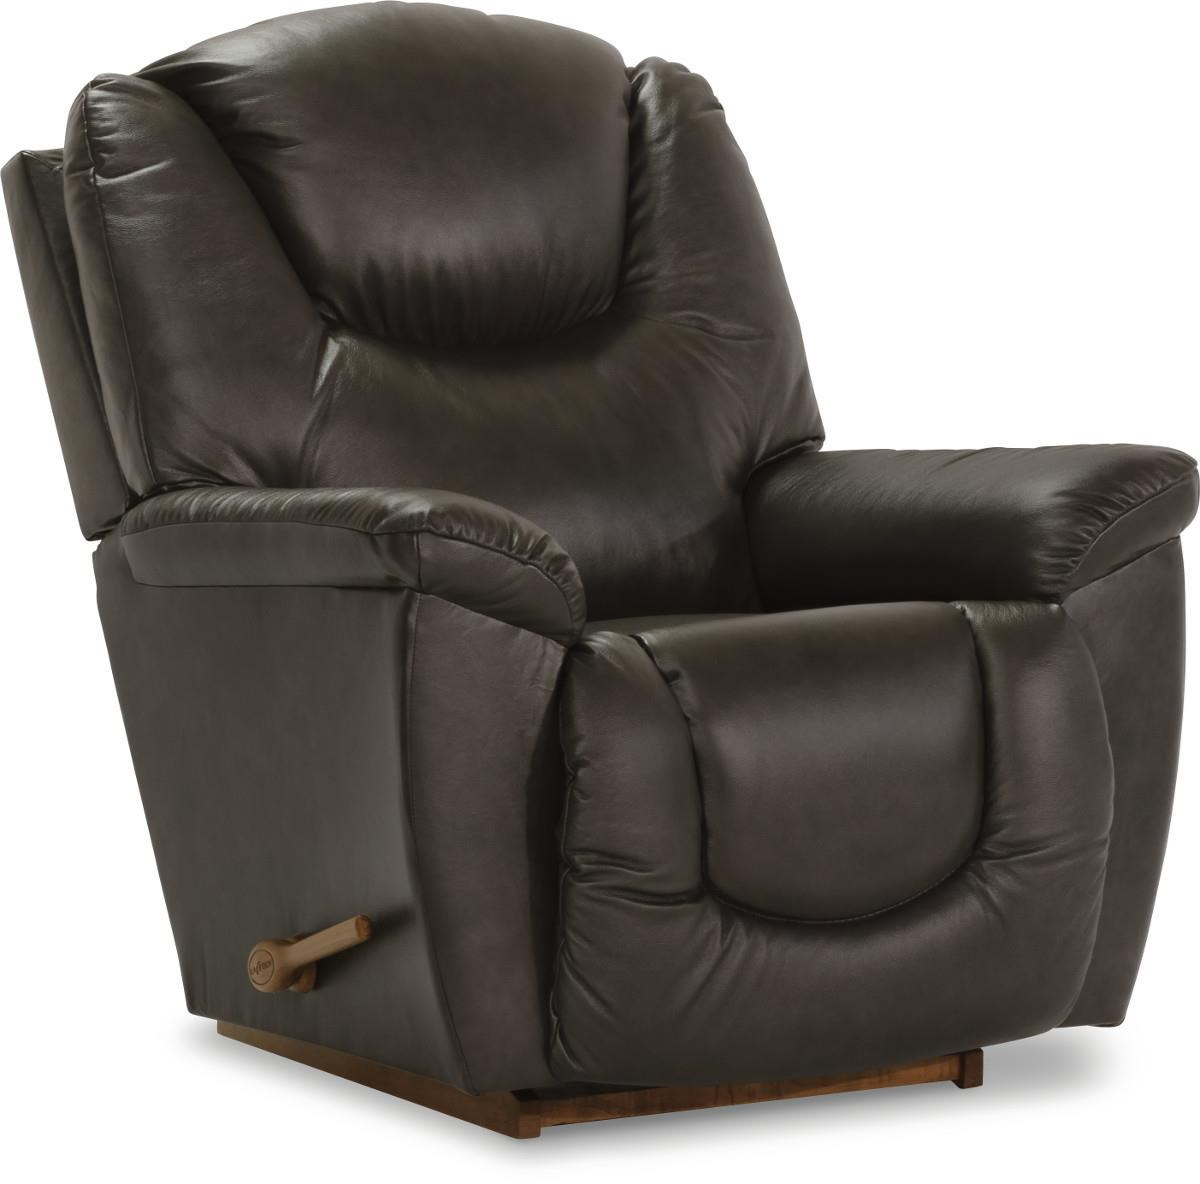 Chaise Z La Z Boy Leather Chaise Rocker Recliner Bennett S Furniture And